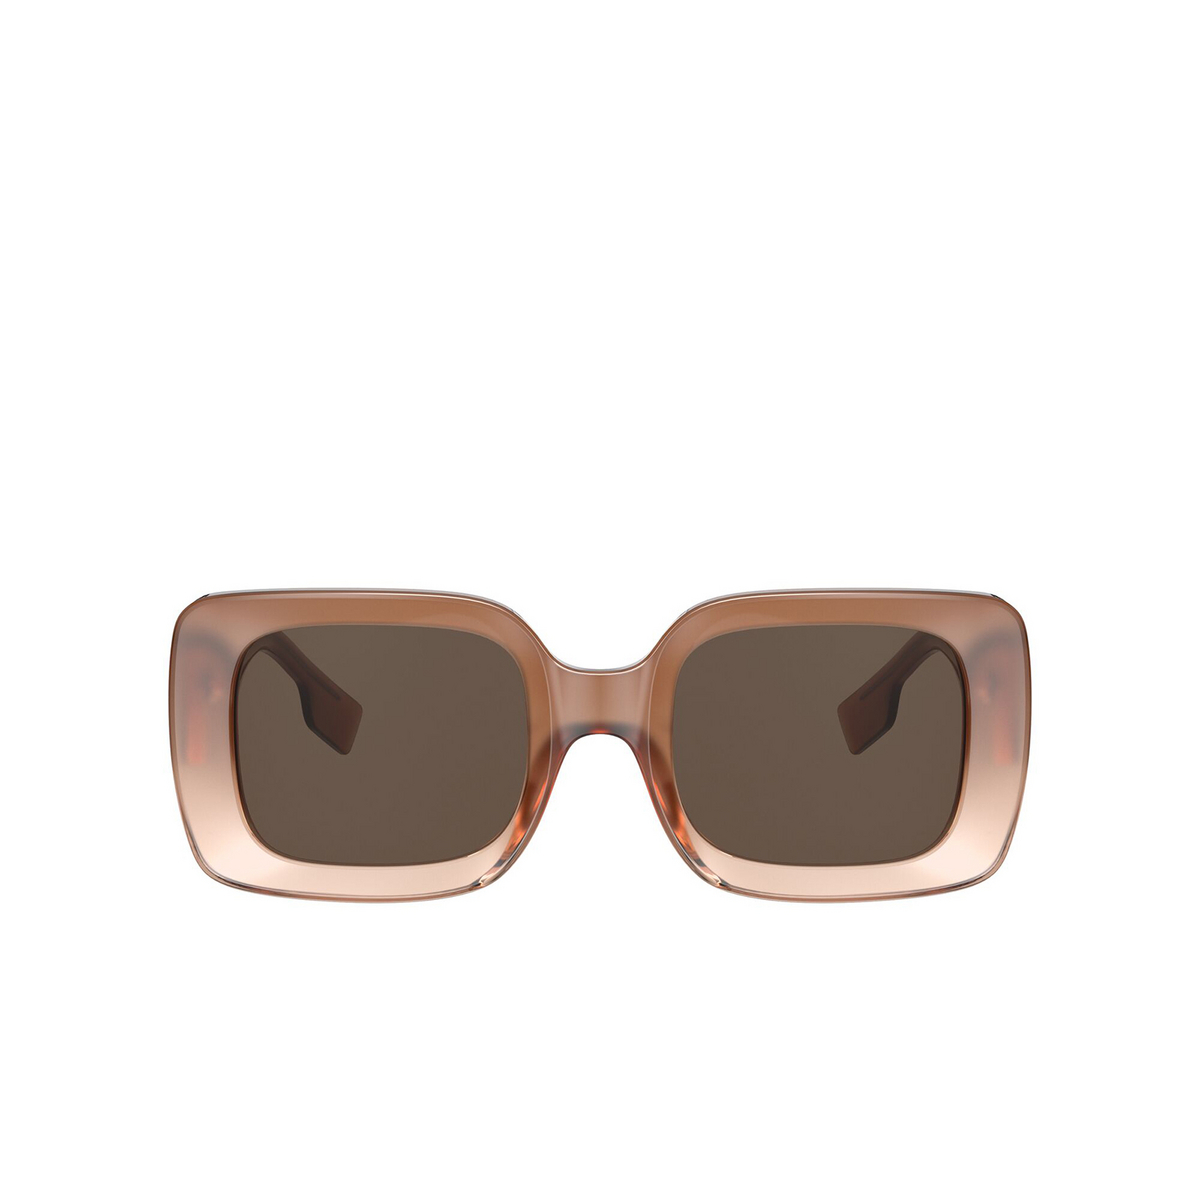 Burberry® Square Sunglasses: Delilah BE4327 color Brown 317373 - front view.